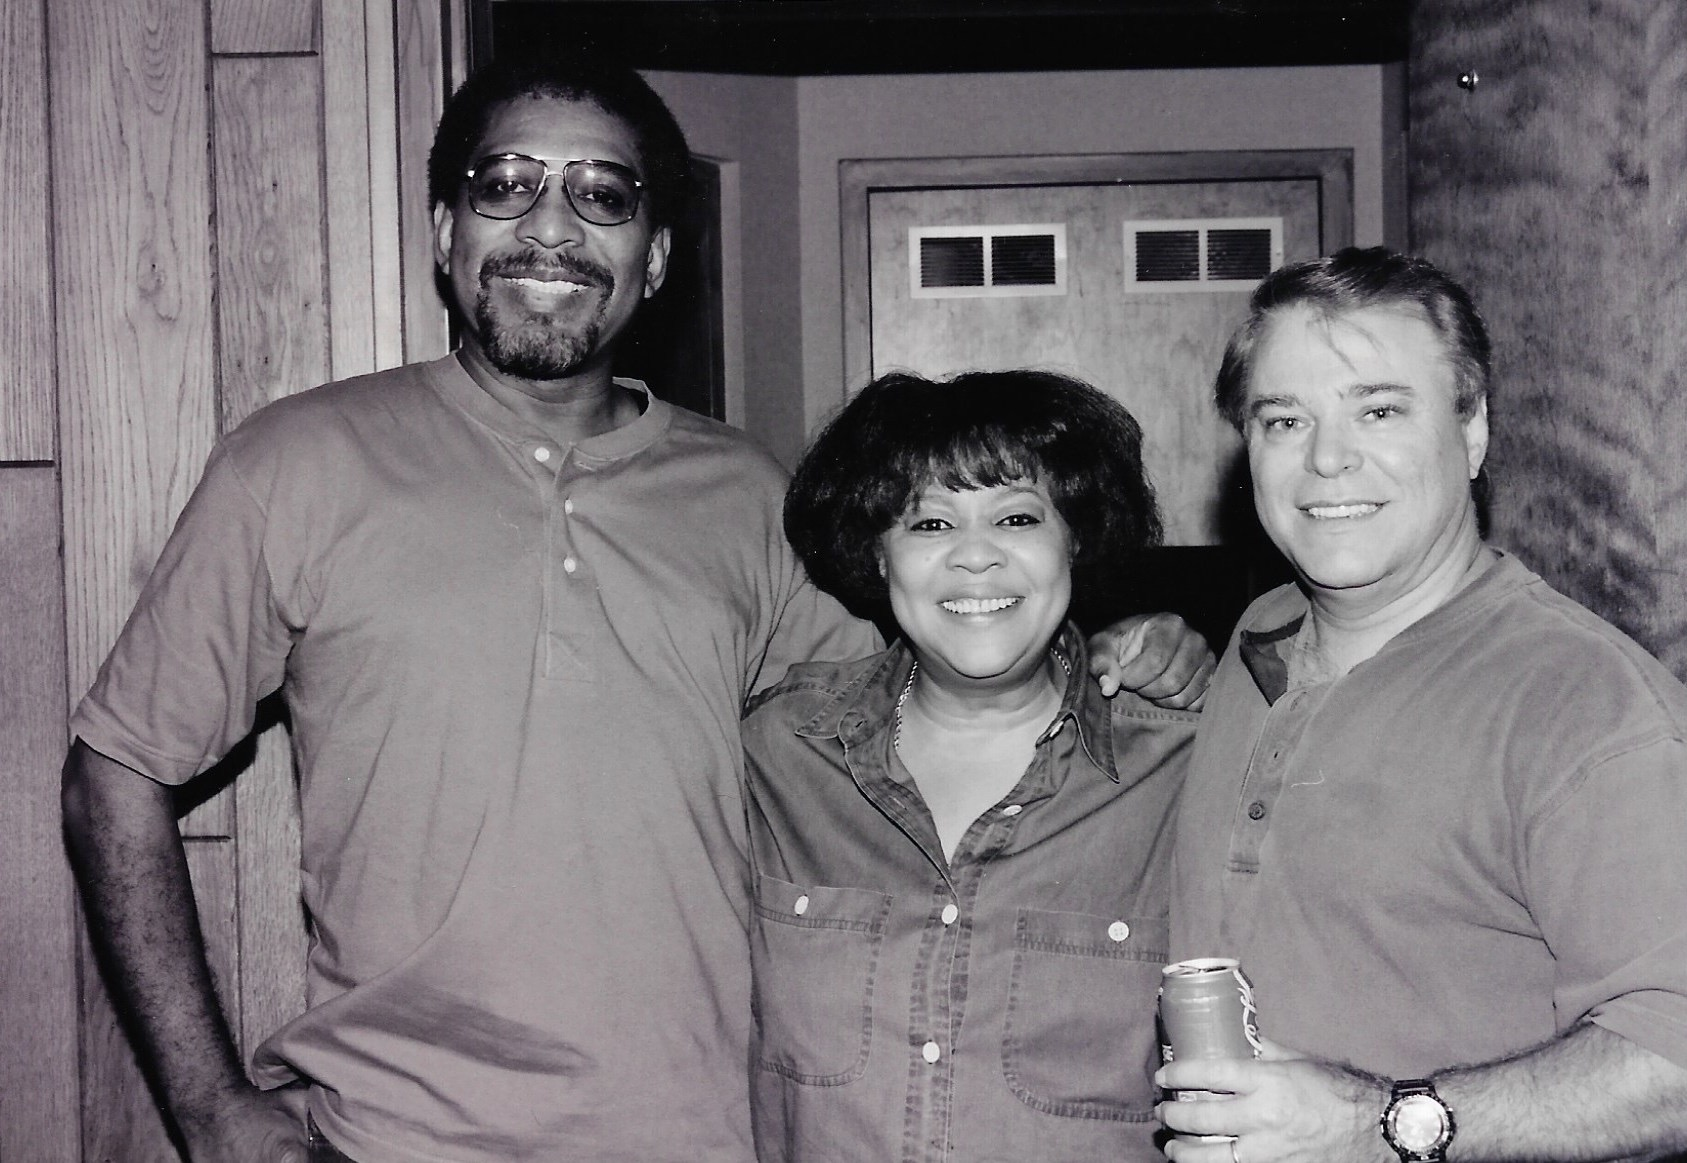 Wayne Jackson with RMavis Staples